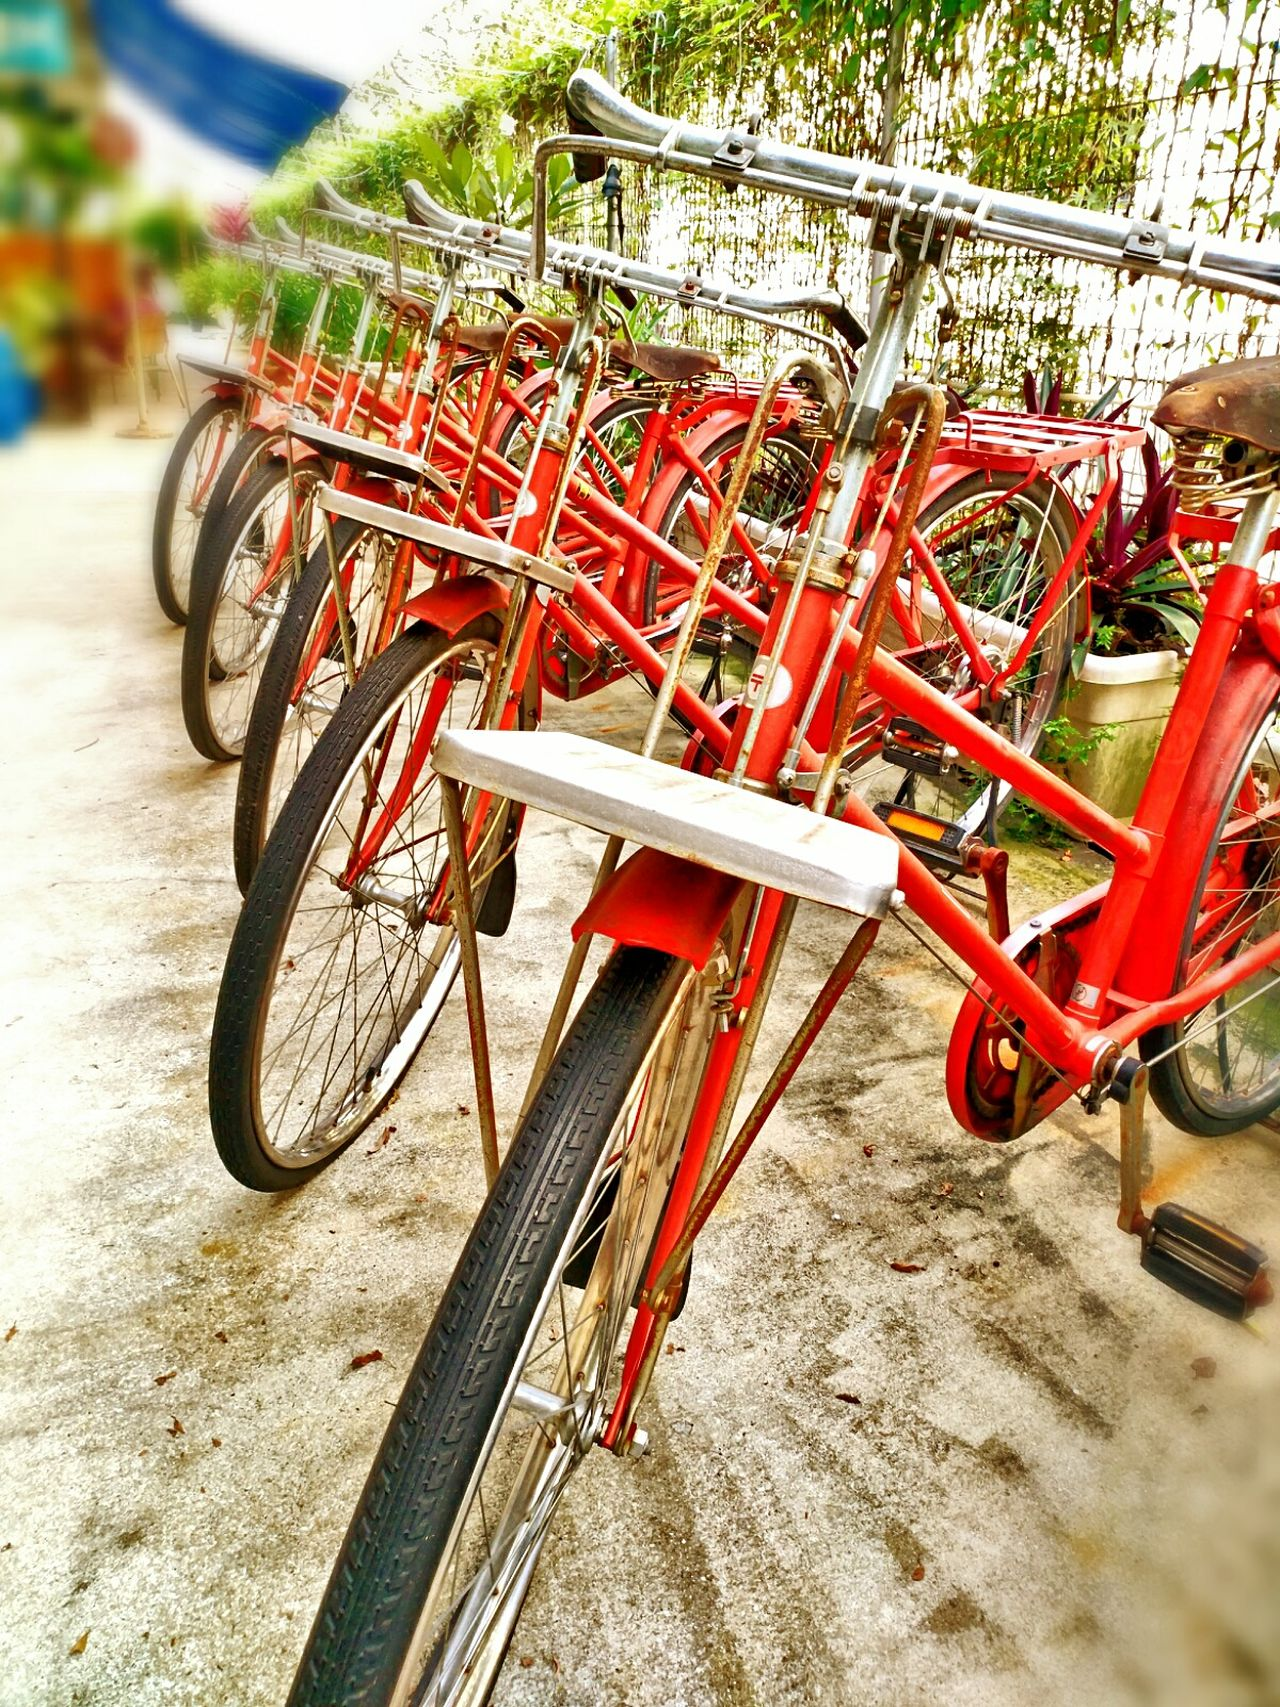 Outdoors Day Red No People Close-up Land Vehicle Art Is Everywhere EyeEmNewHere Singapore Tire Wheels Transportation Vehicle Bicycle Bicycle Wheel Bike Singapore Break The Mold The Great Outdoors - 2017 EyeEm Awards The Street Photographer - 2017 EyeEm Awards Neighborhood Map BYOPaper!